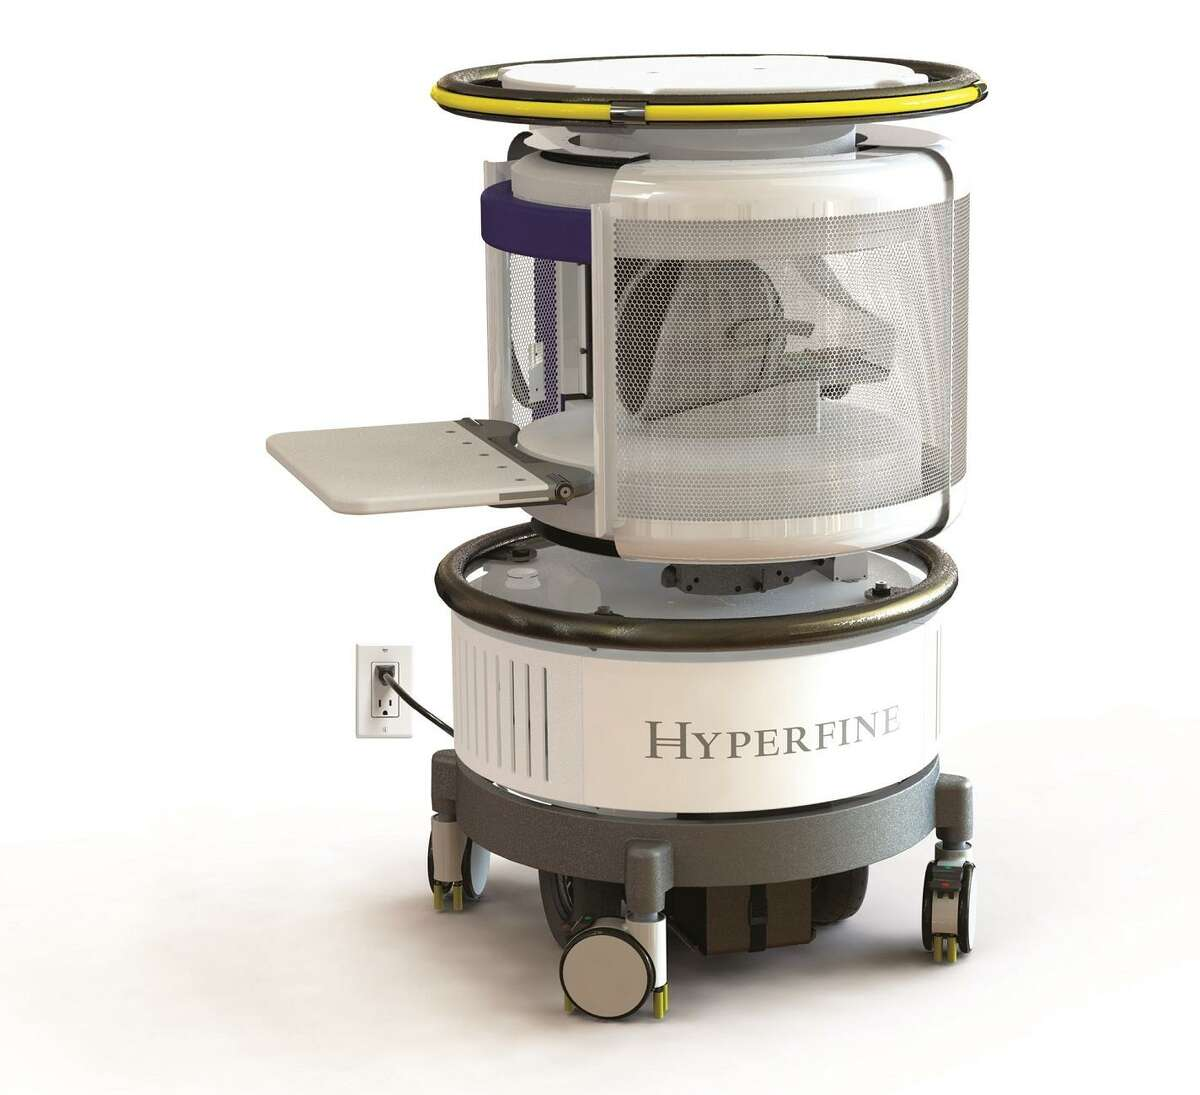 Hyperfine Research of Guilford has created a portable magnetic resonance imaging unit.